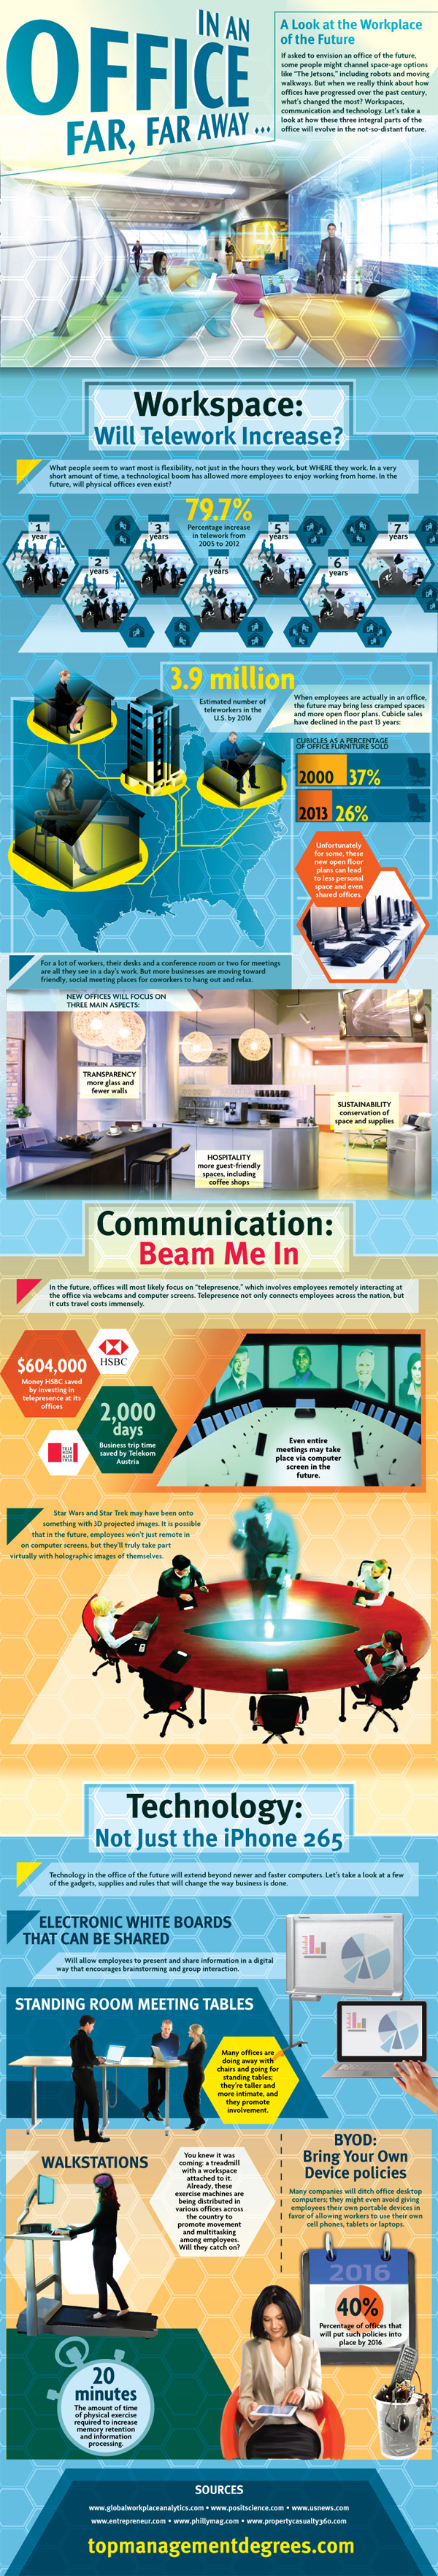 workplace of tomorrow-Infographic